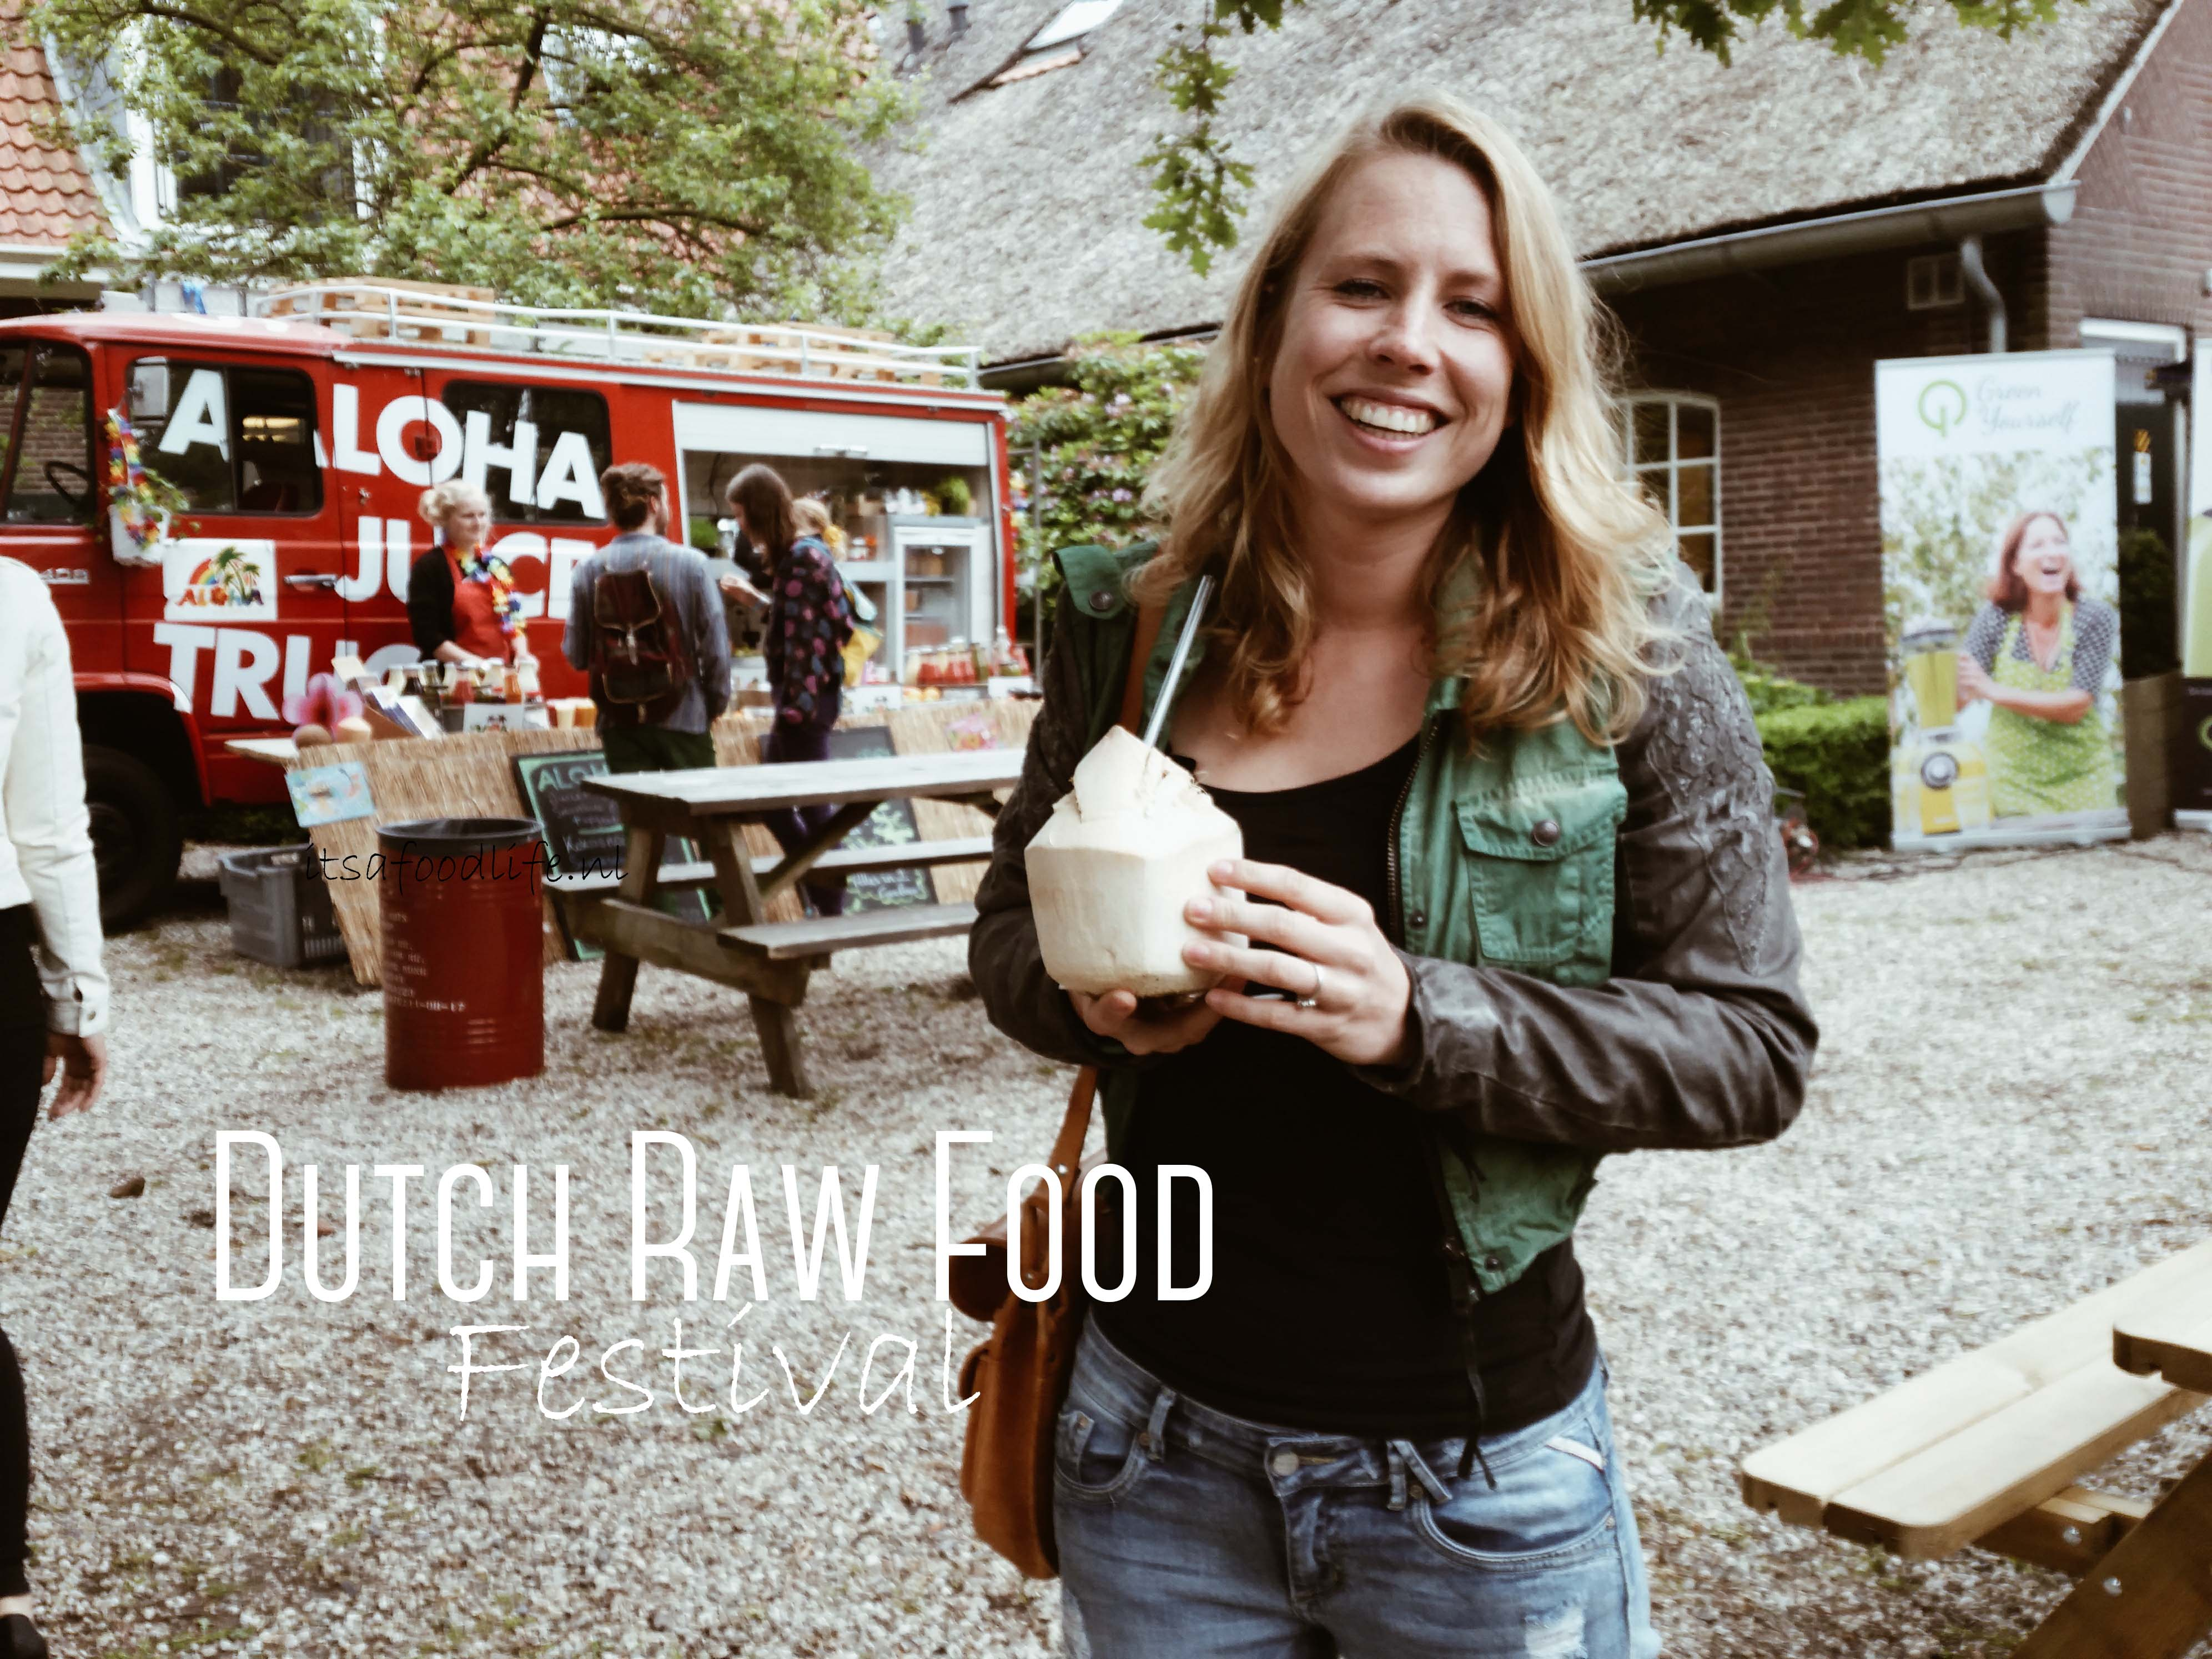 Dutch Raw food festival | It's a food life